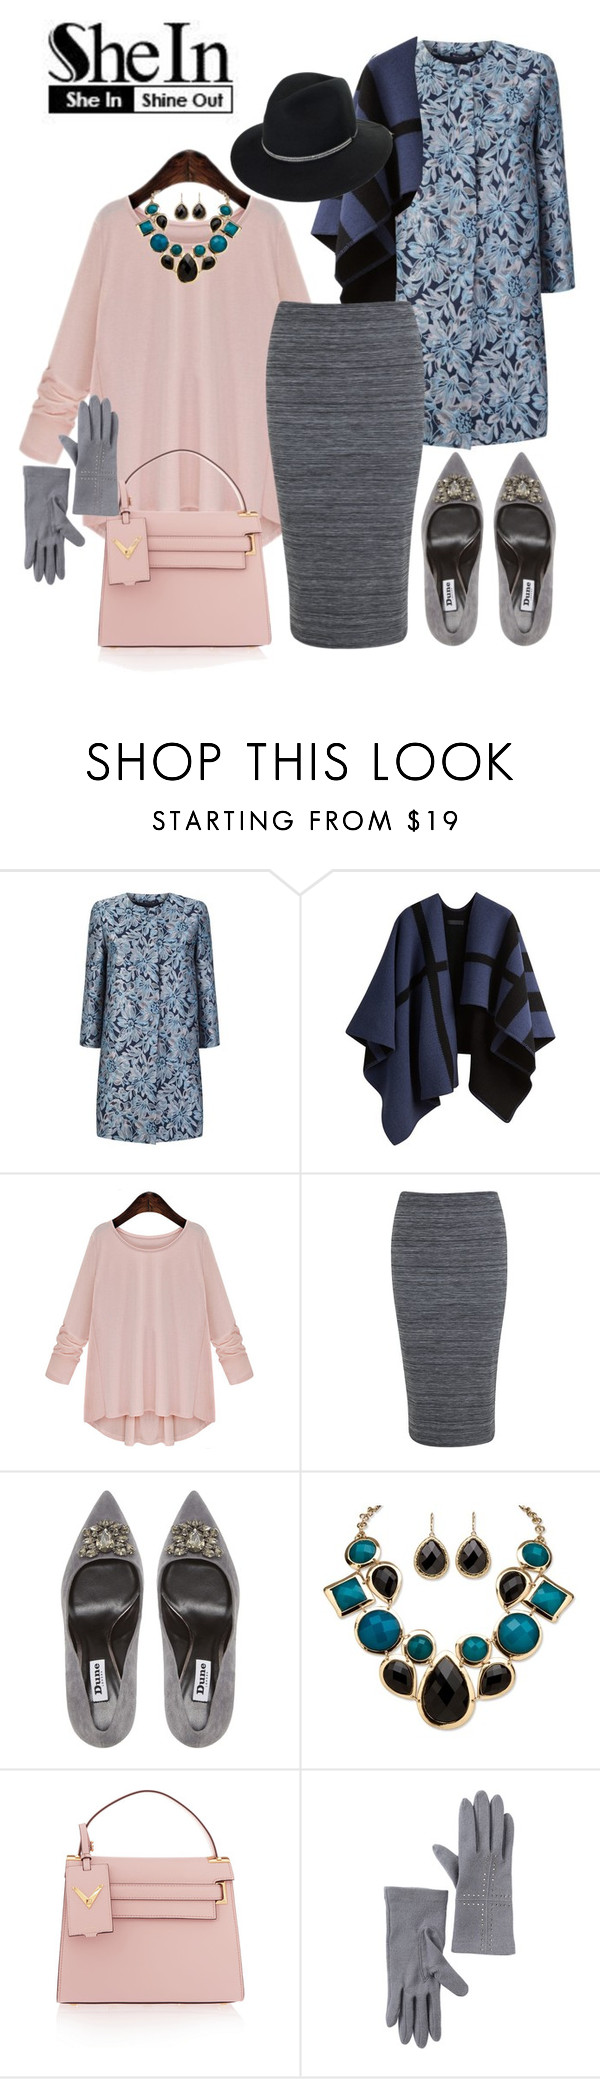 """""""Pink Round Neck Long Sleeve Bow Loose Blouse Set"""" by ul-inn ❤ liked on Polyvore featuring MaxMara, Burberry, Miss Selfridge, Dune, Palm Beach Jewelry, Valentino, Vincent Pradier, women's clothing, women's fashion and women"""